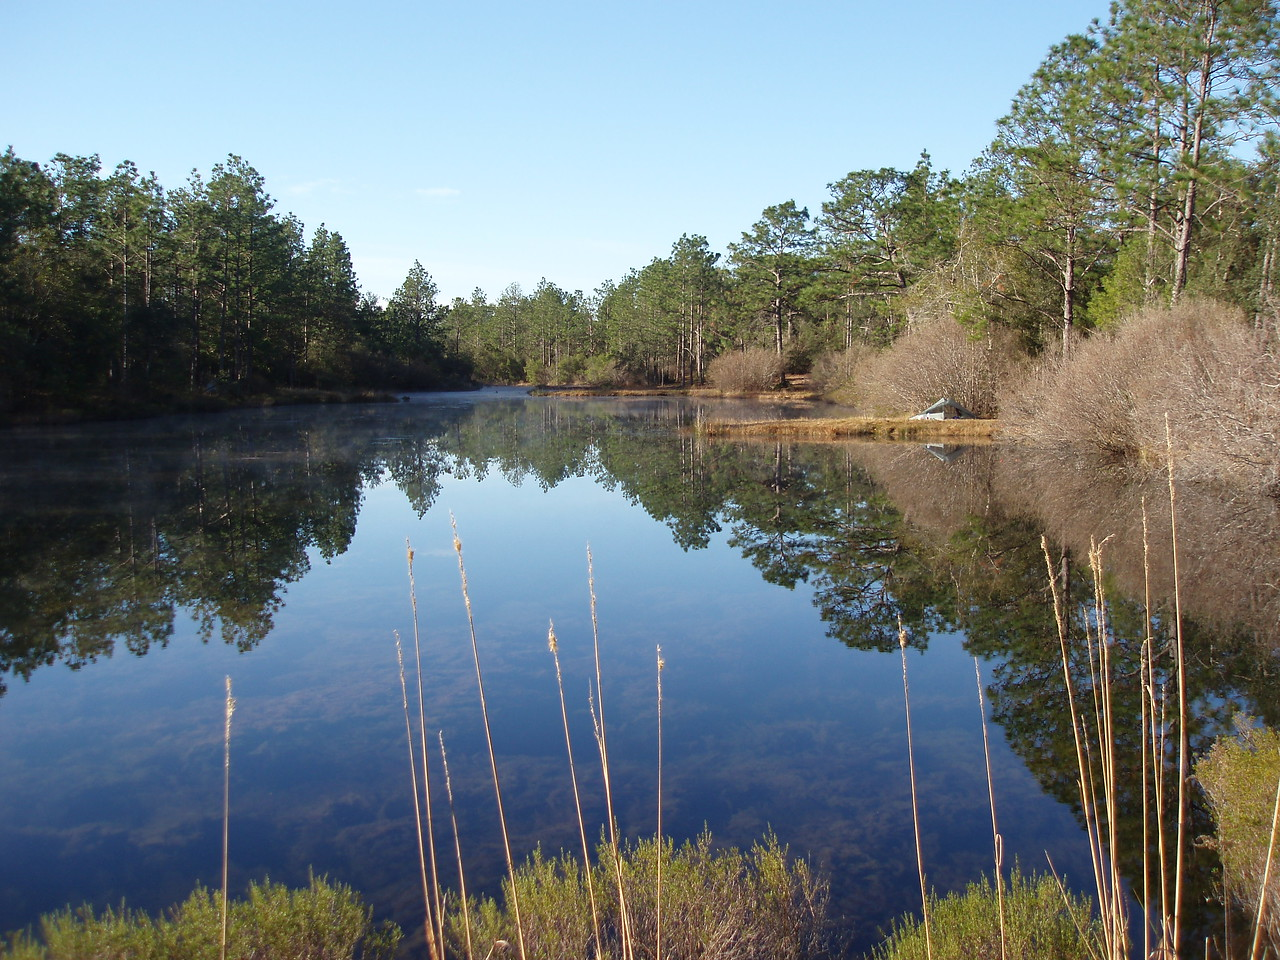 Camping at JR Walton Pond, Eglin AFB<br /> PHOTO CREDIT: Robert Coveney / Florida Trail Association